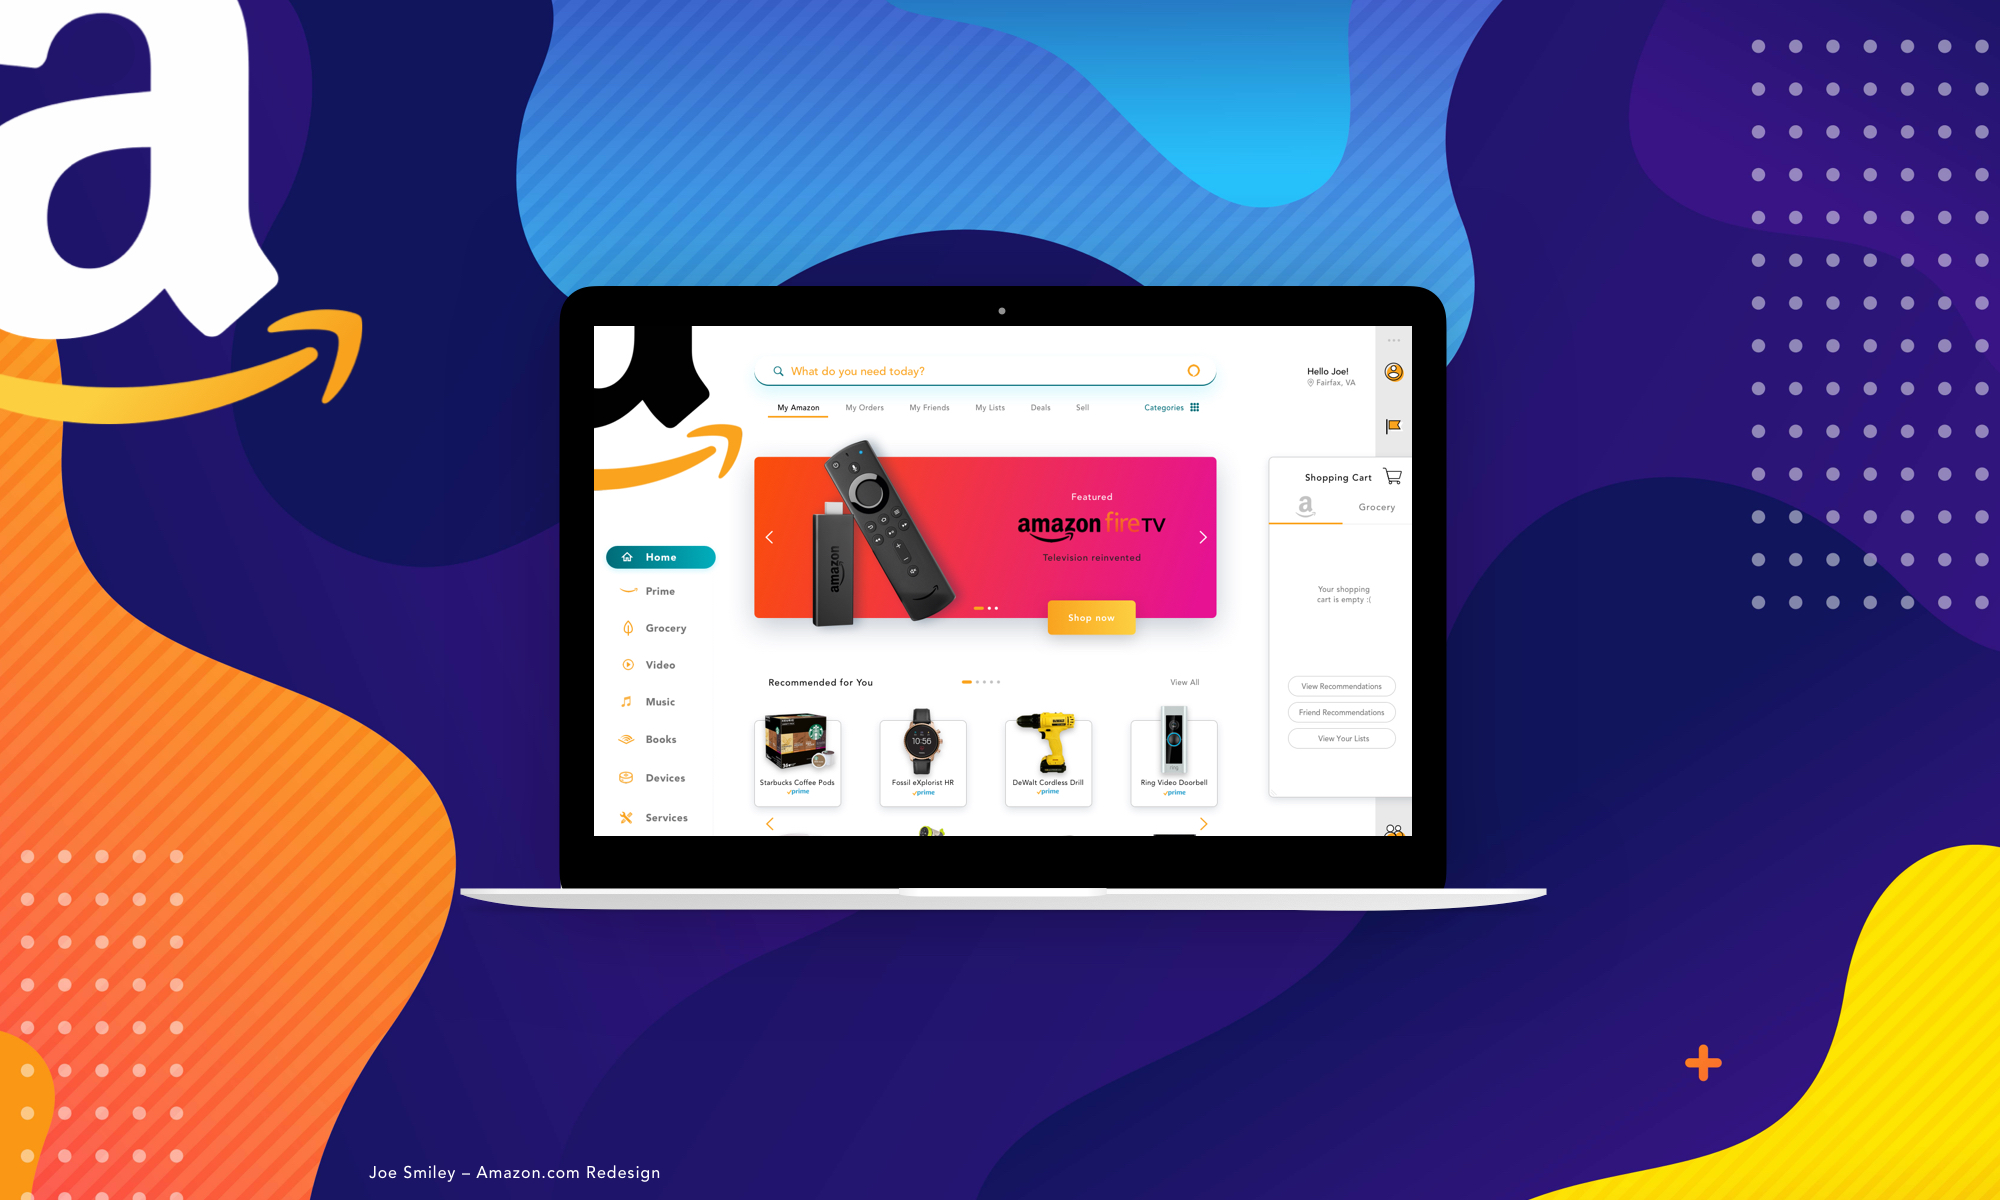 amazon redesigned web experience by Joe Smiley